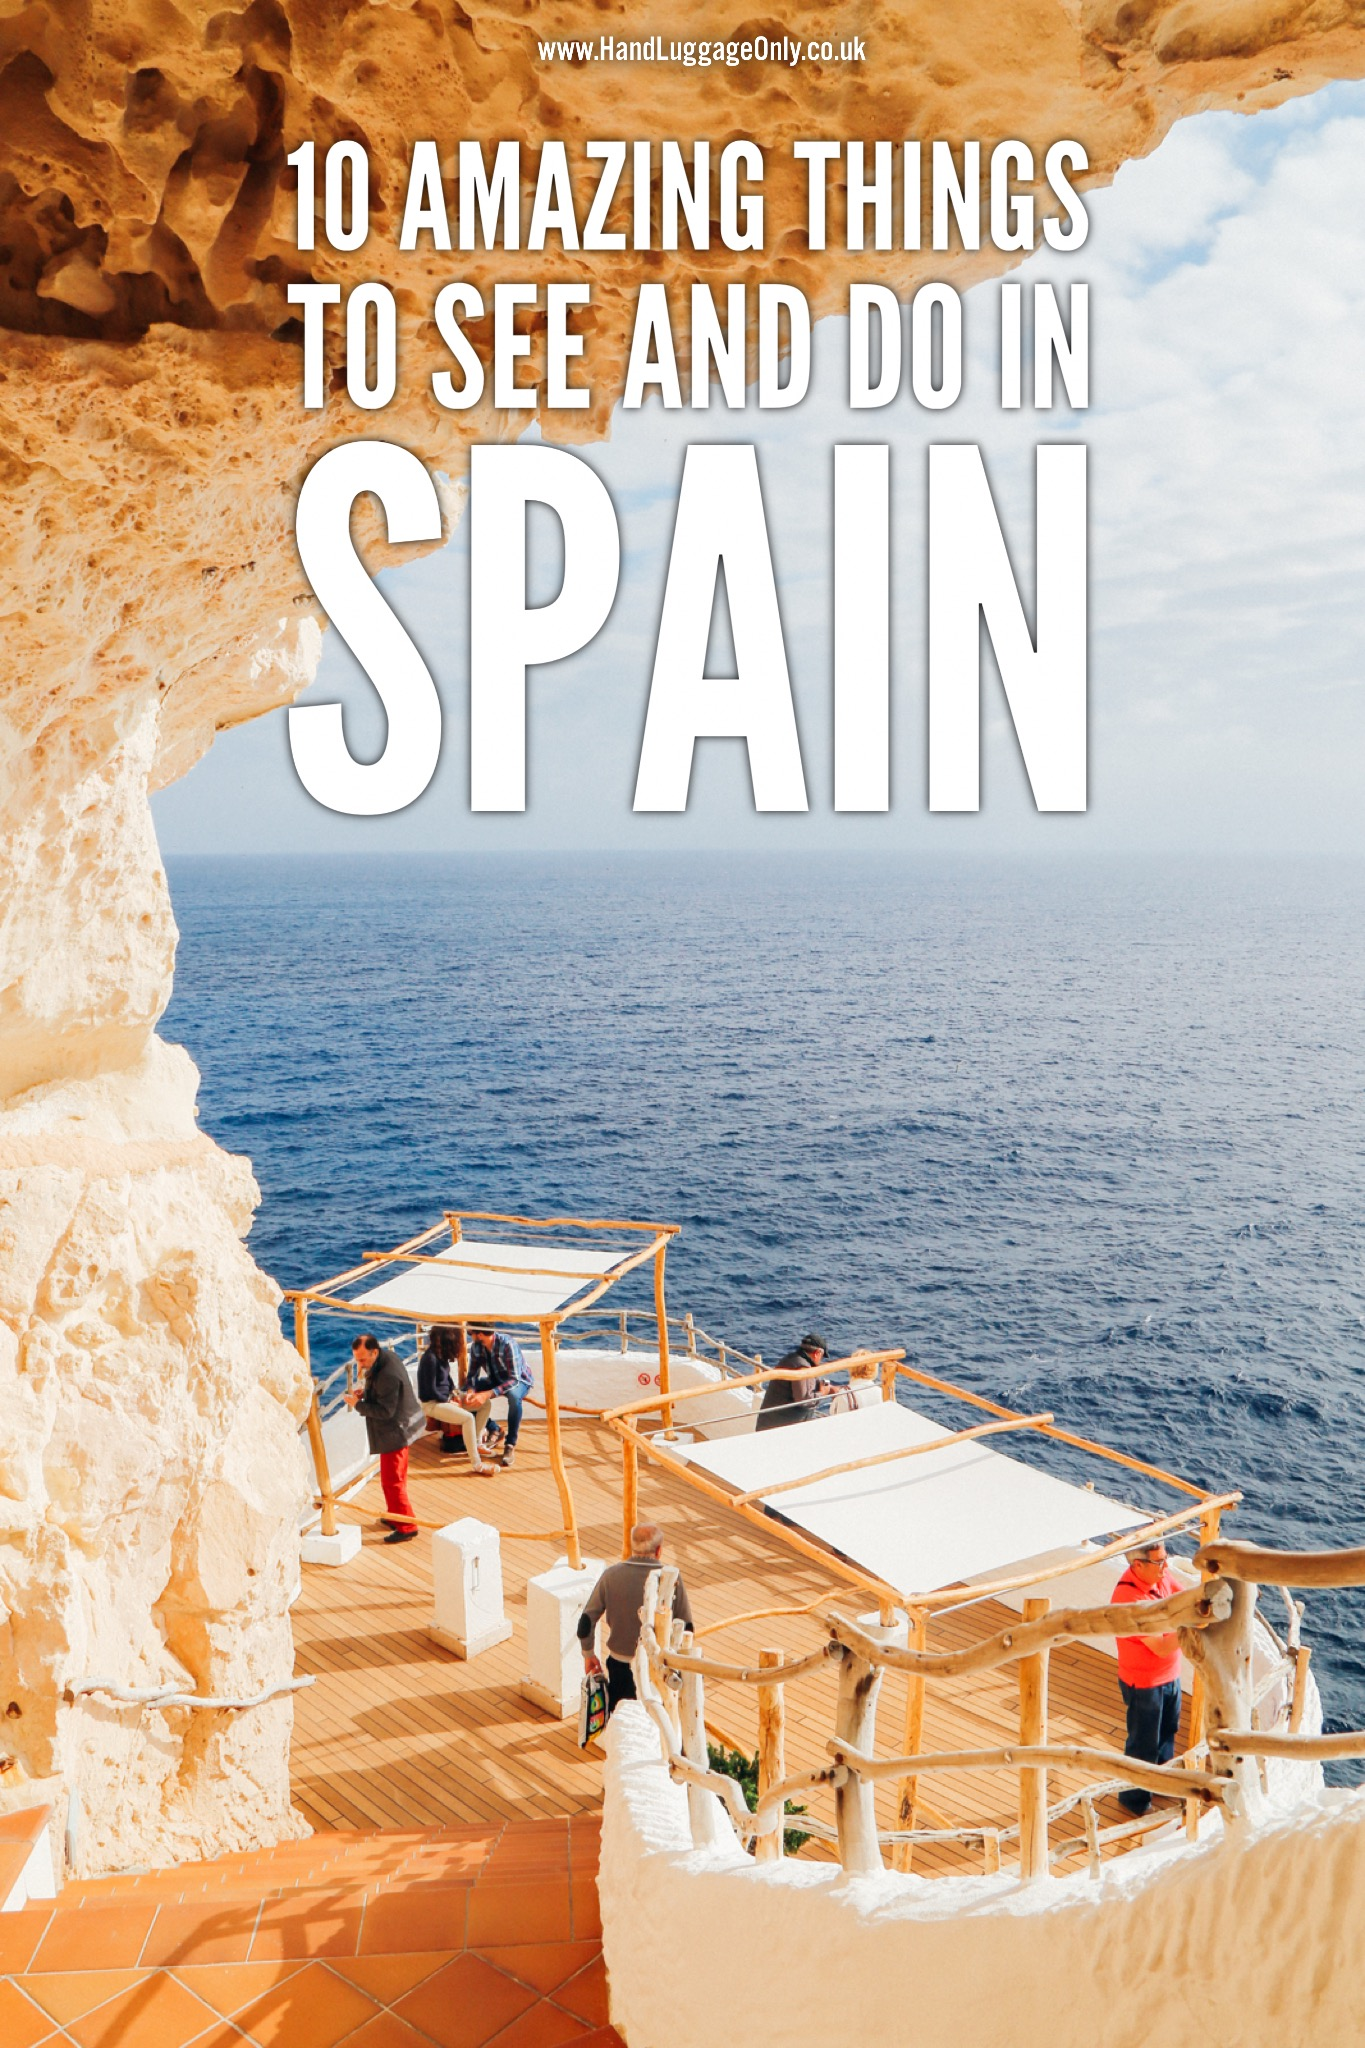 10 Amazing Things To See And Do In Spain